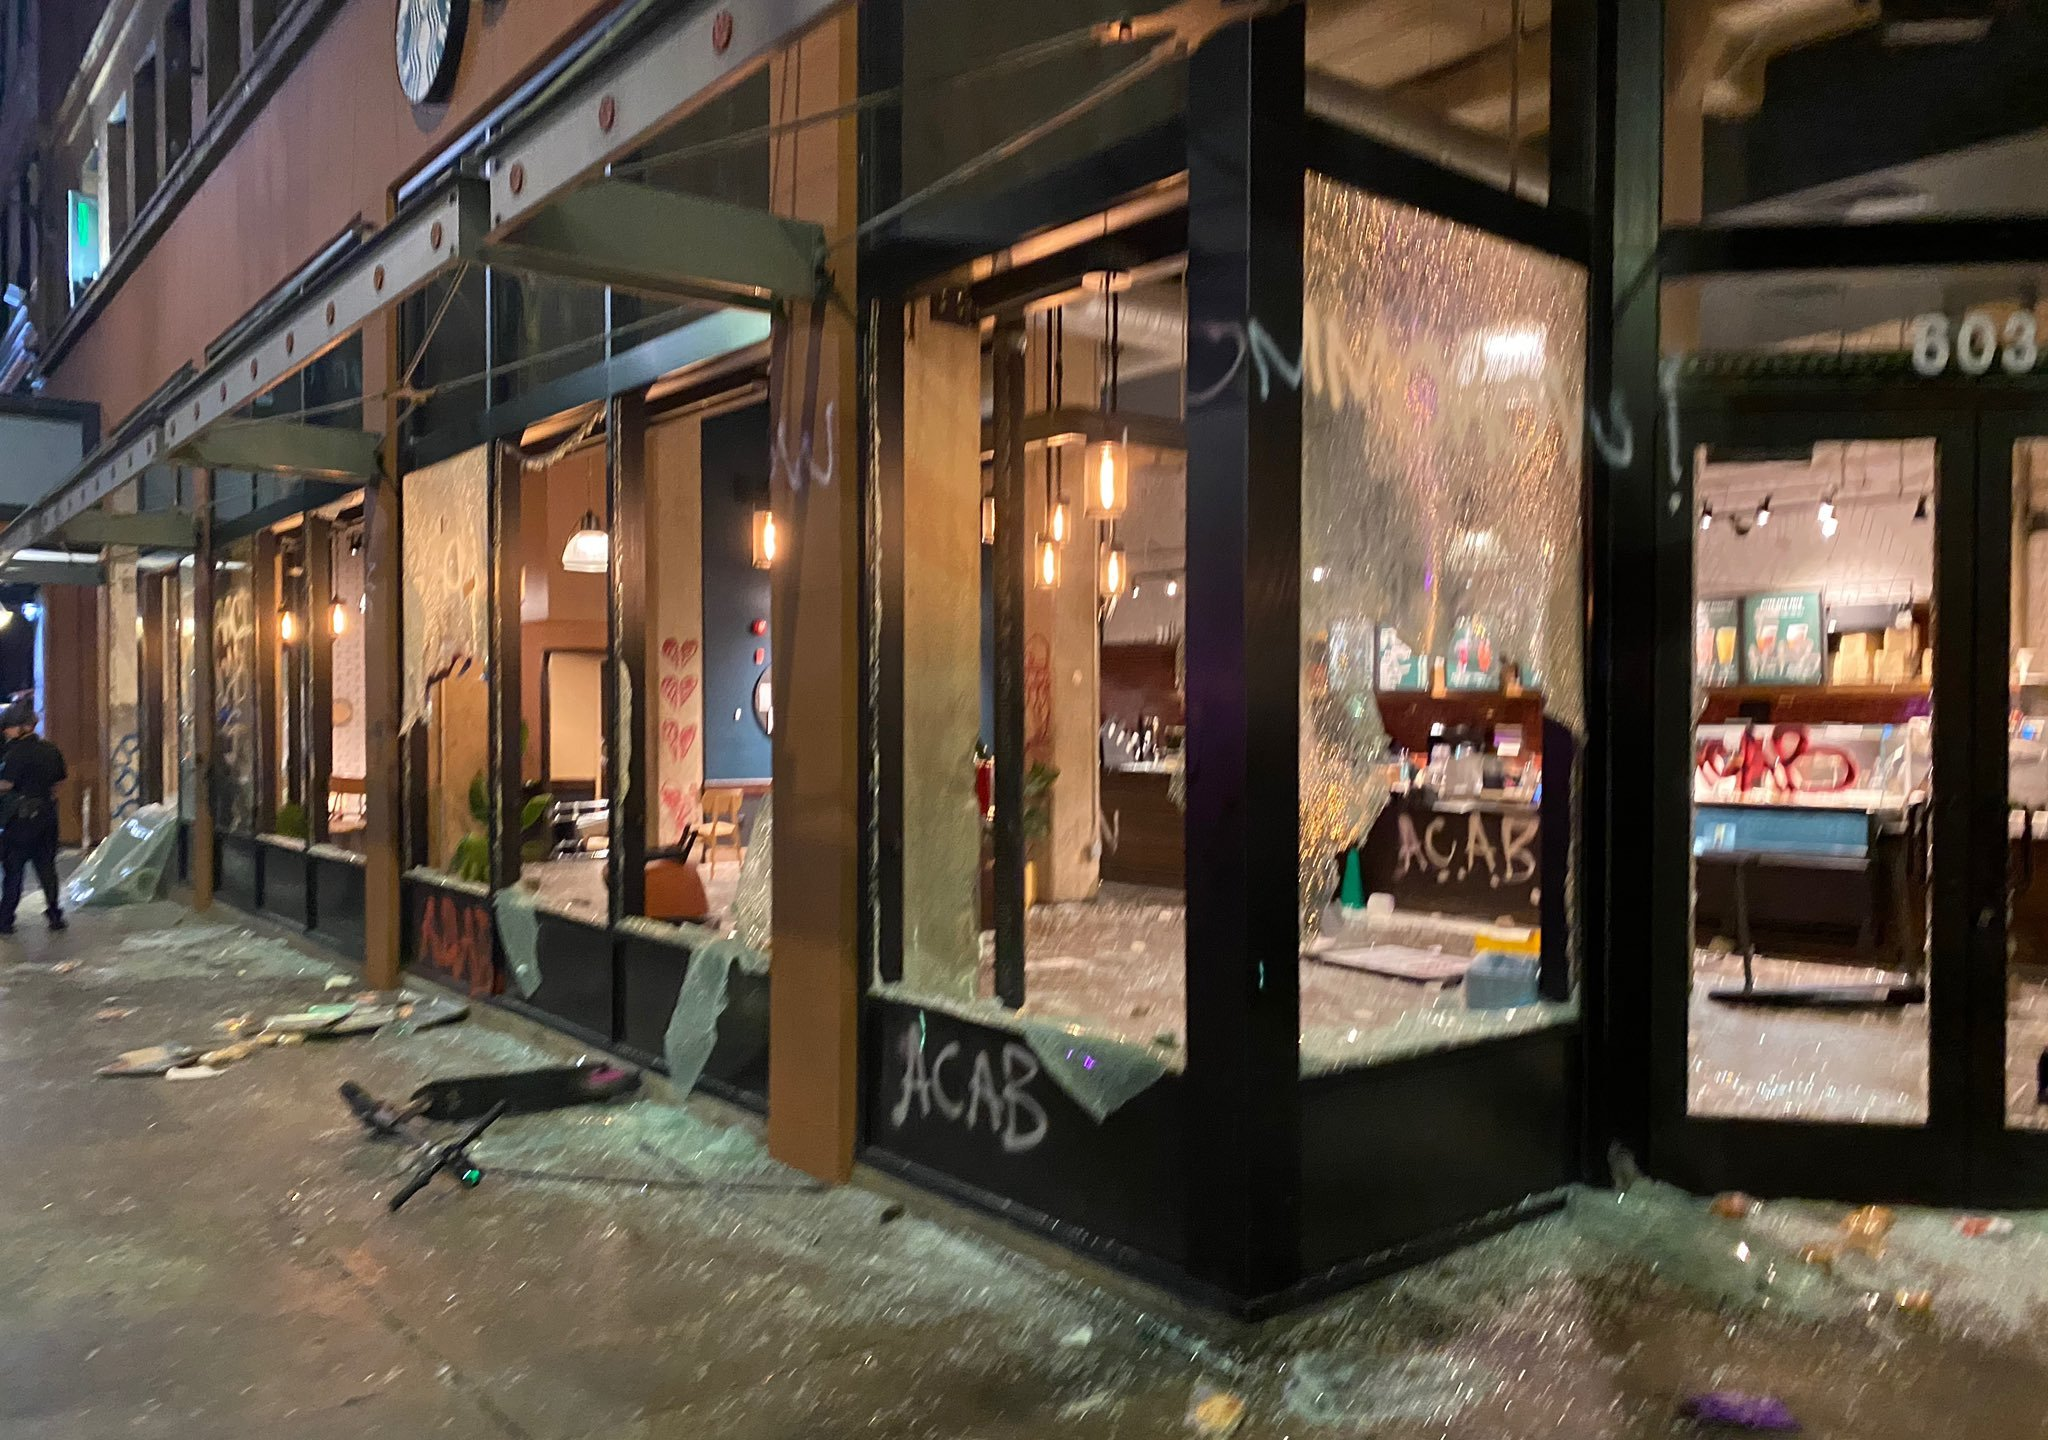 LAPD Chief Michel Moore tweeted this photo on May 30, 2020 of a Starbucks location with broken windows and door in downtown Los Angeles.